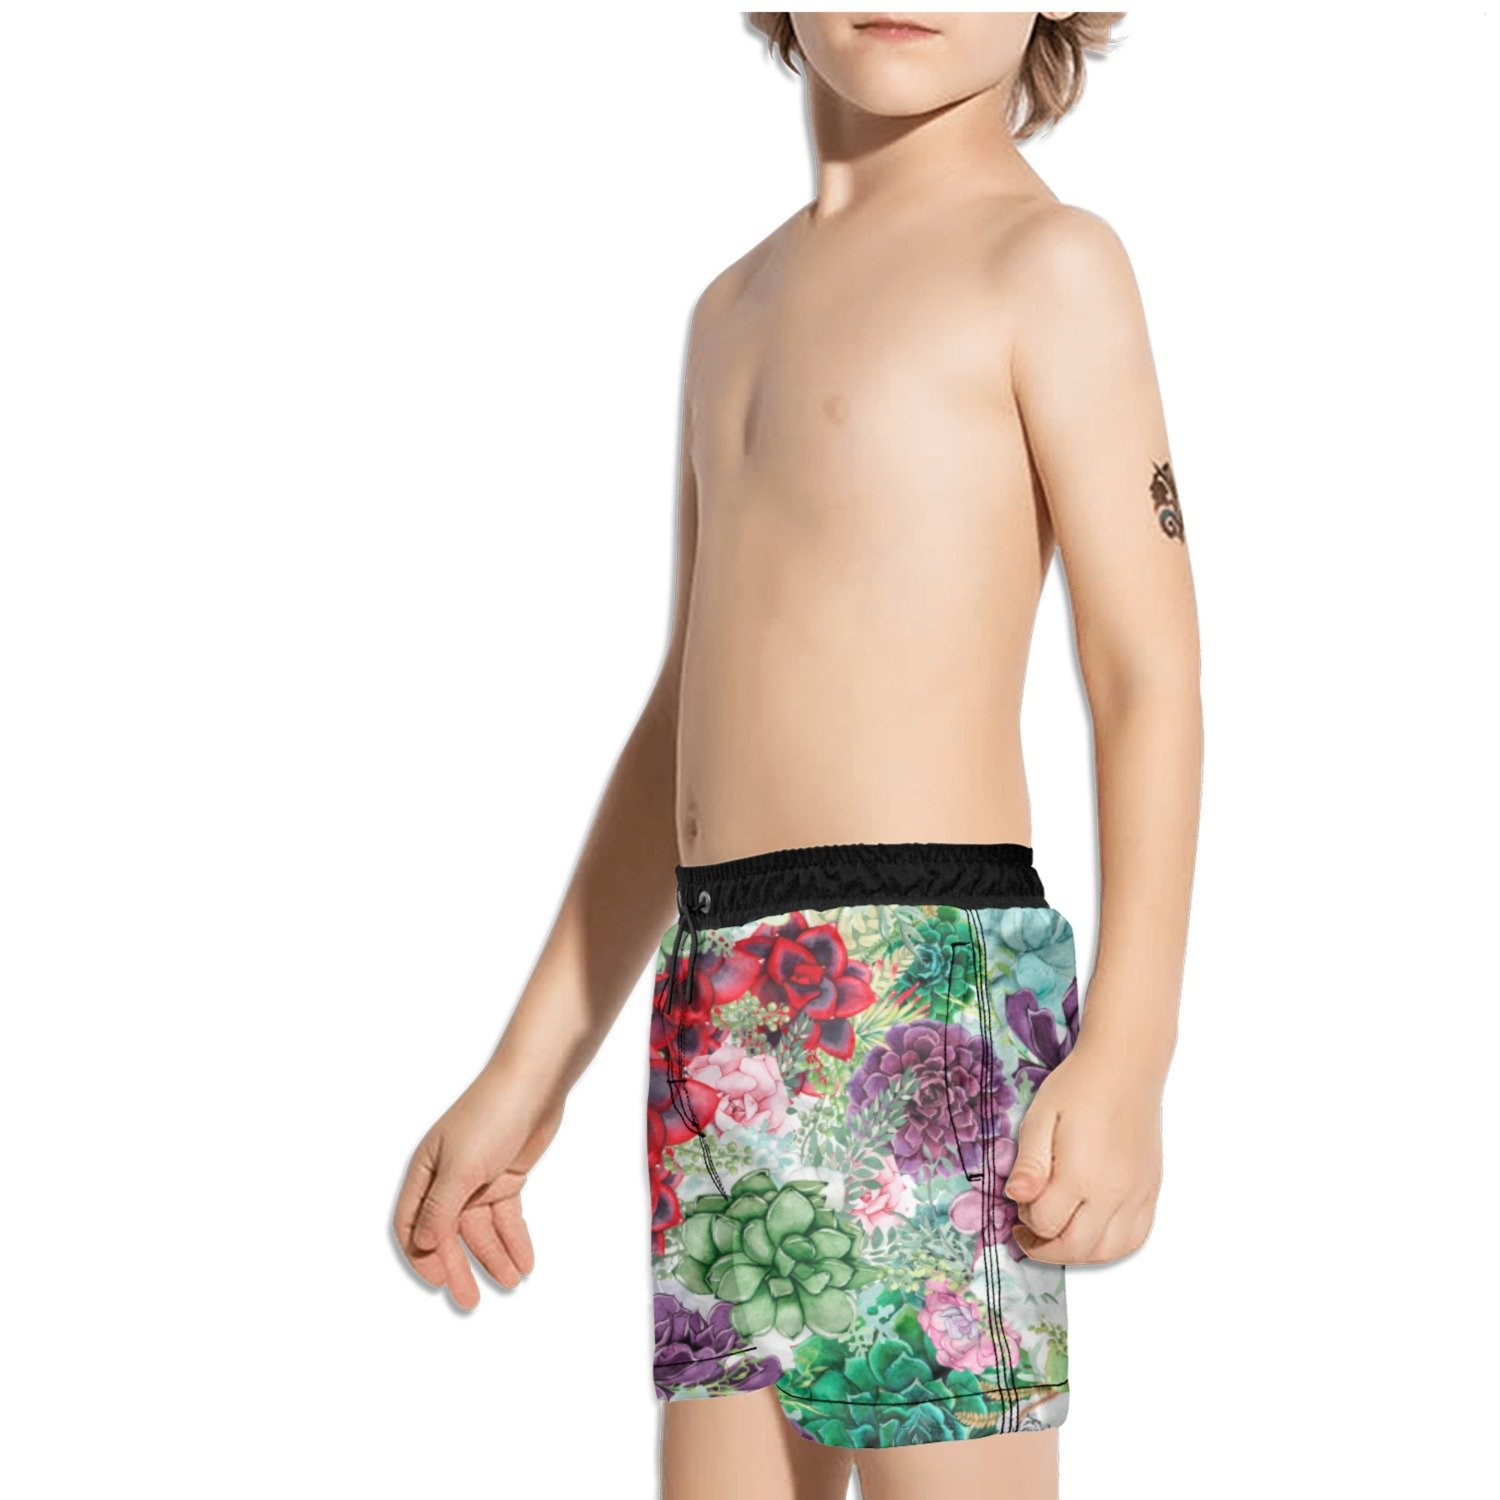 Ouxioaz Boys Swim Trunk Succulents Cactus Flower Beach Board Shorts